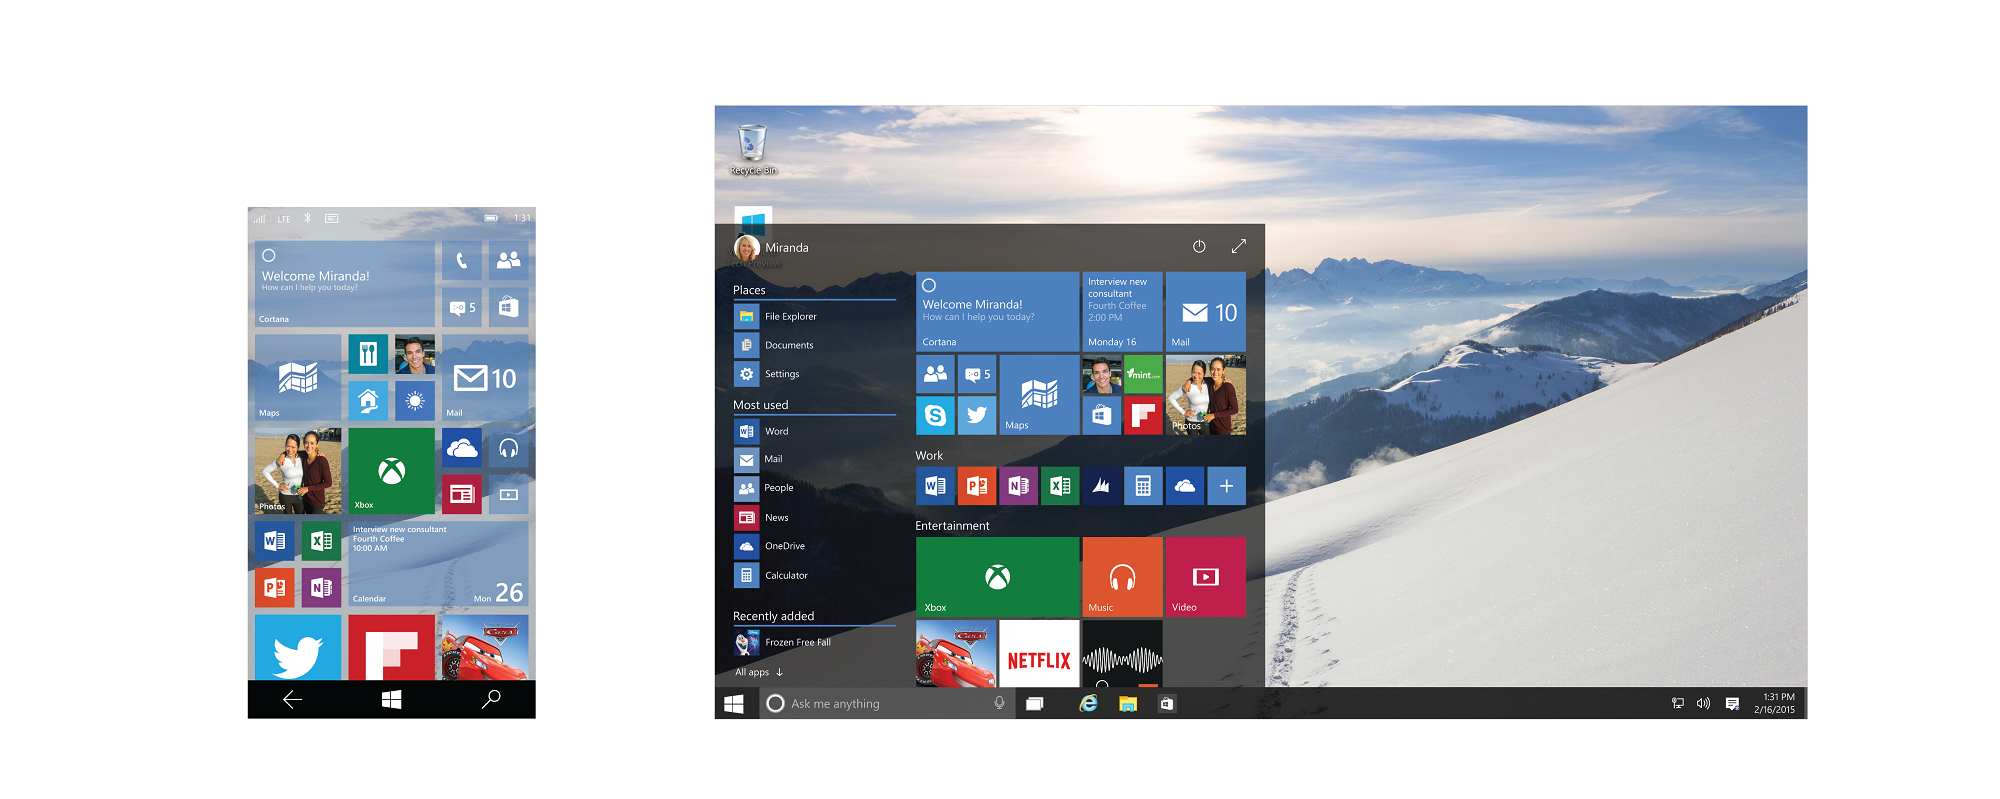 5 Trucos de Windows 10 súper útiles para geeks